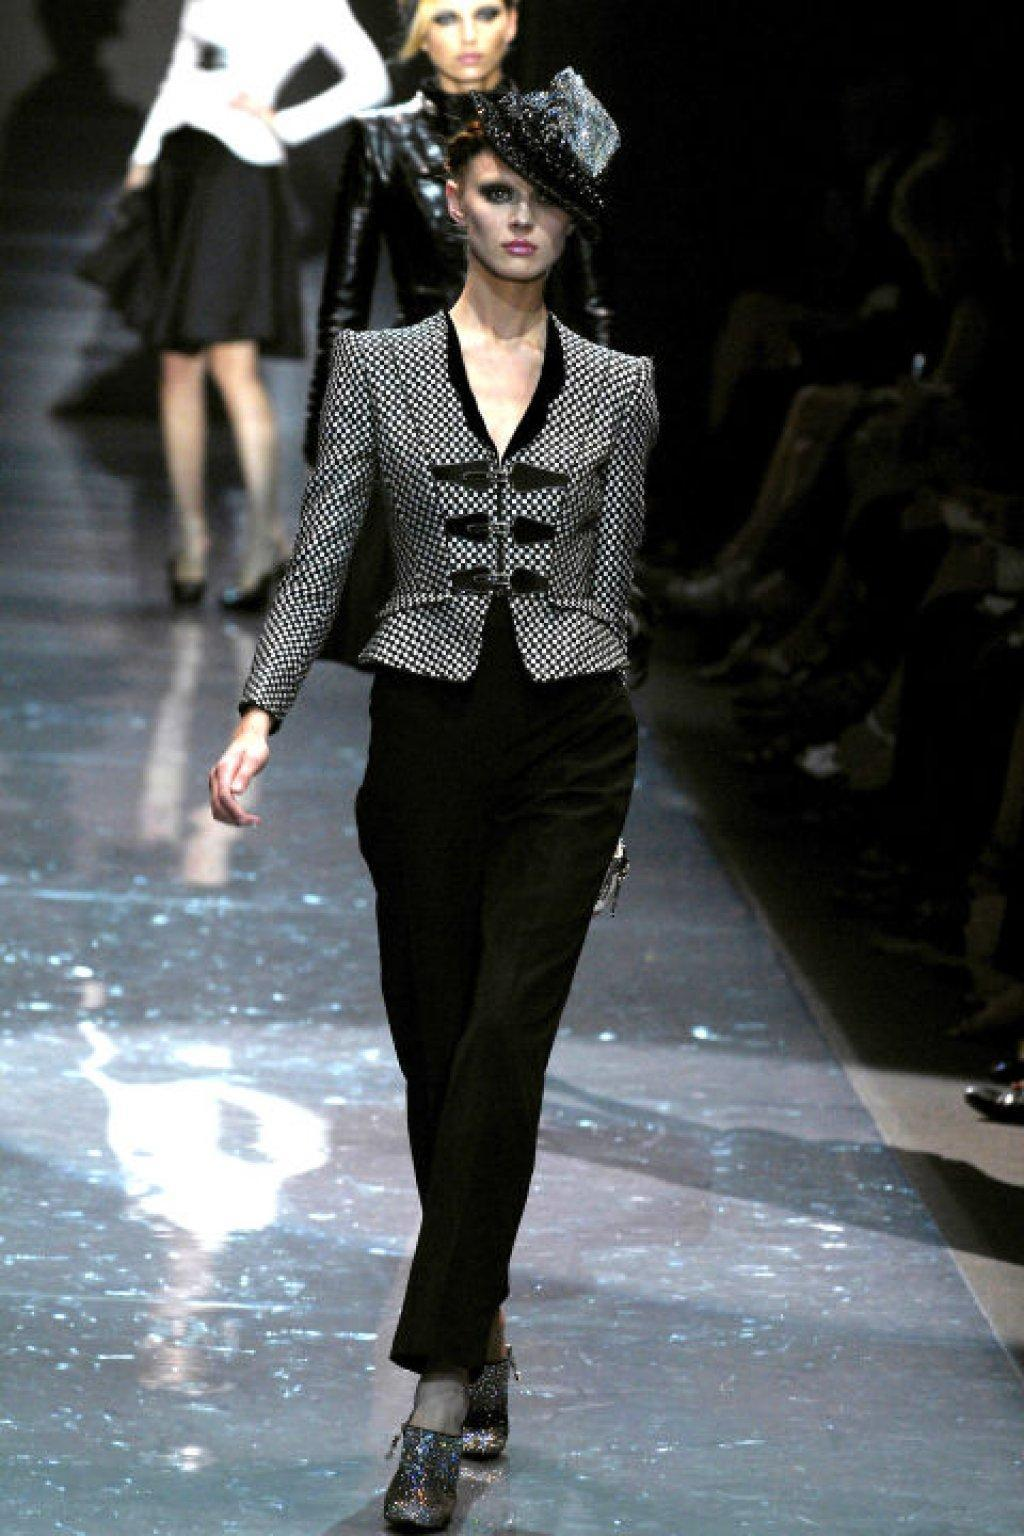 hbz-david-bowie-inspired-runway-armani-prive-fall-2007-getty